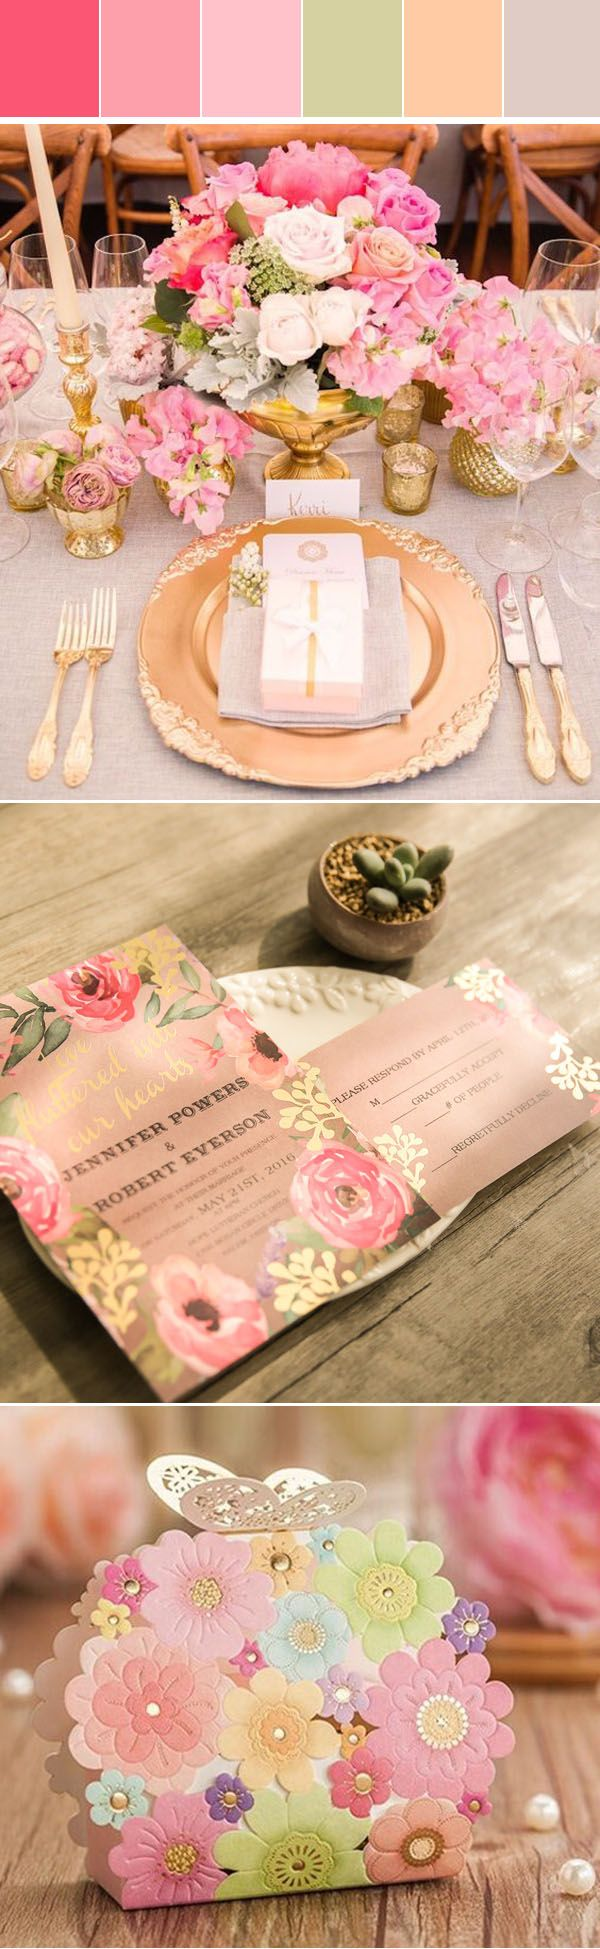 Five Pretty Summer Wedding Colors In shade of Gold with